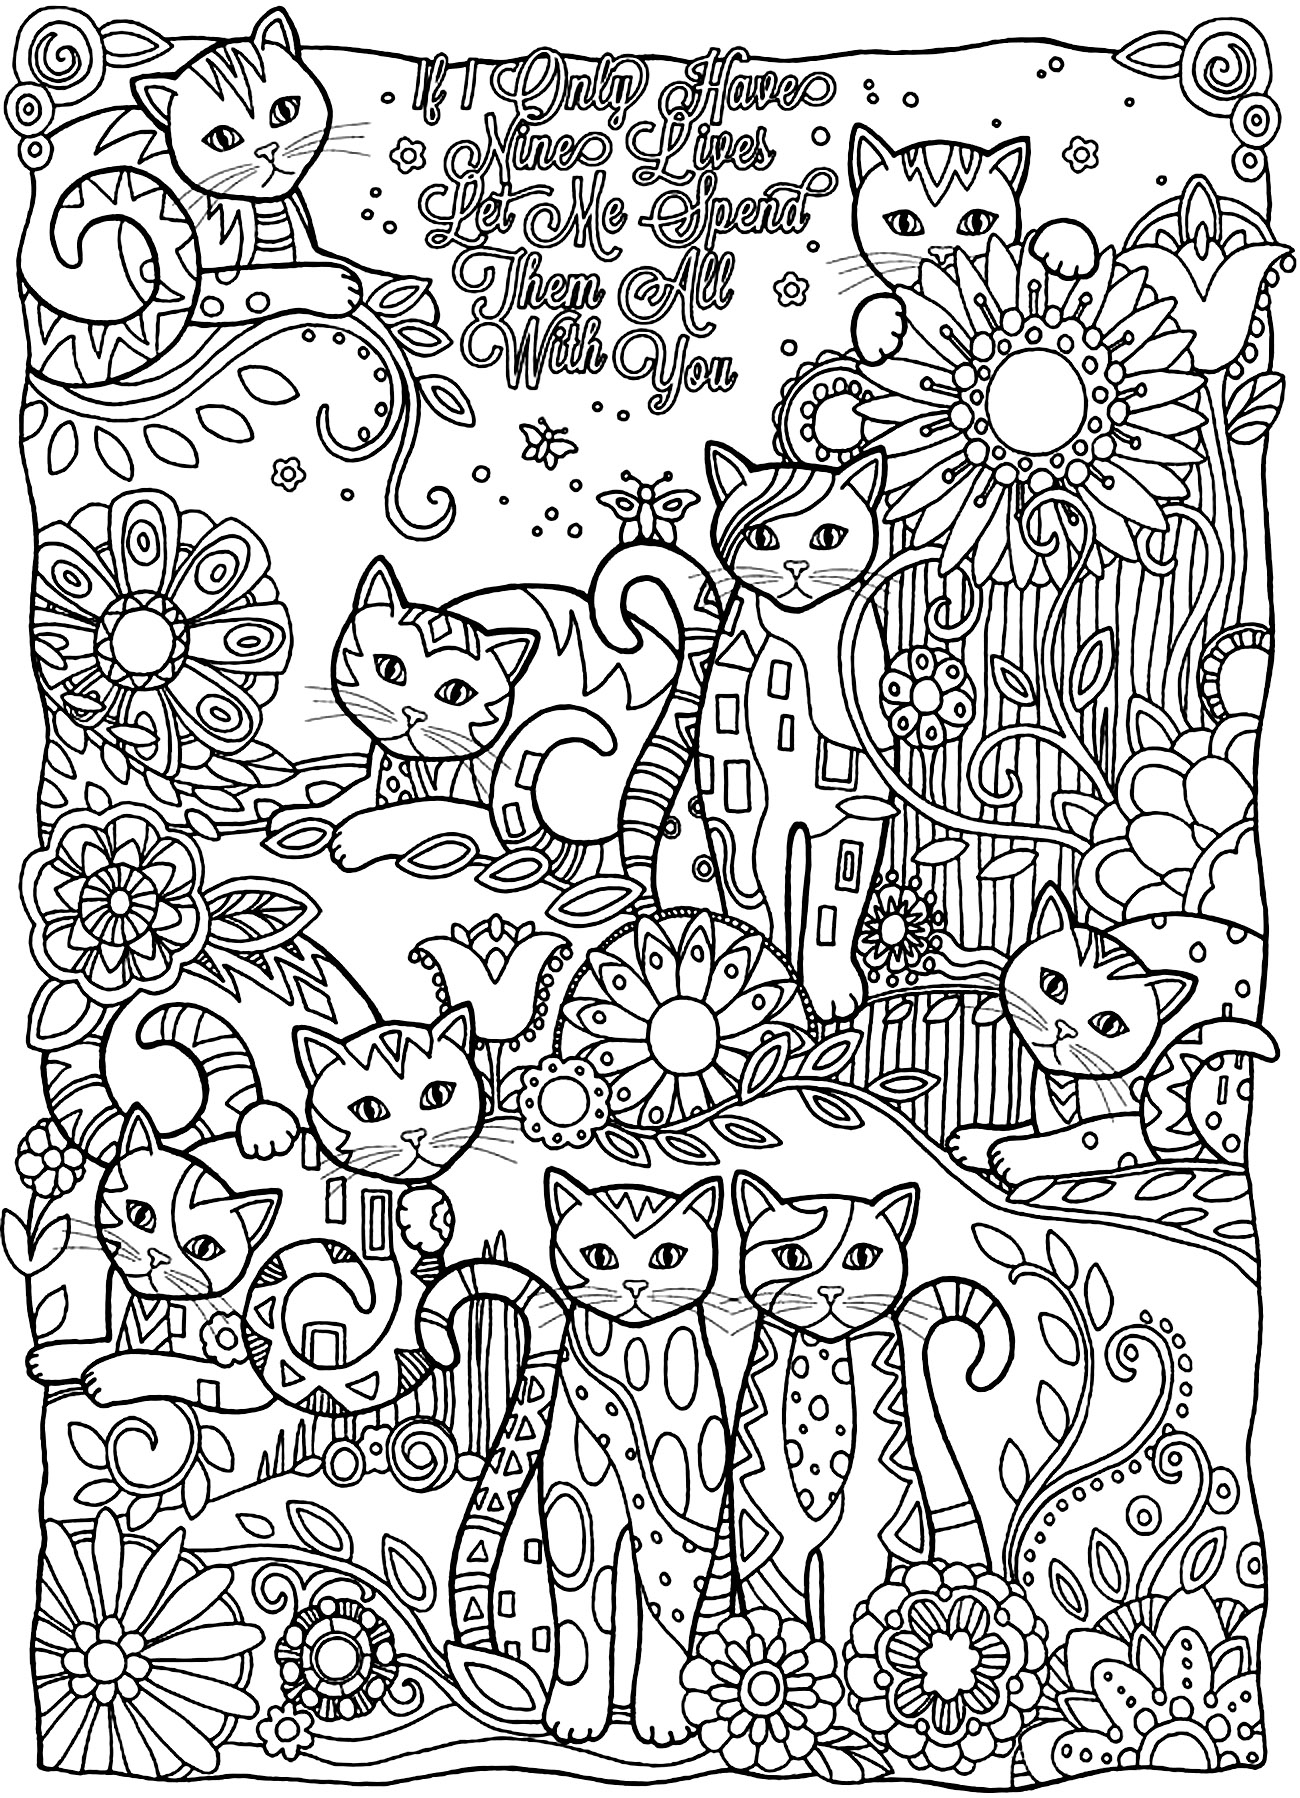 Printable Extremely Hard Coloring Pages for Adults – Color Bros to Print Of Stress Relief Coloring Pages Animals Funny Coloring Pages Printable